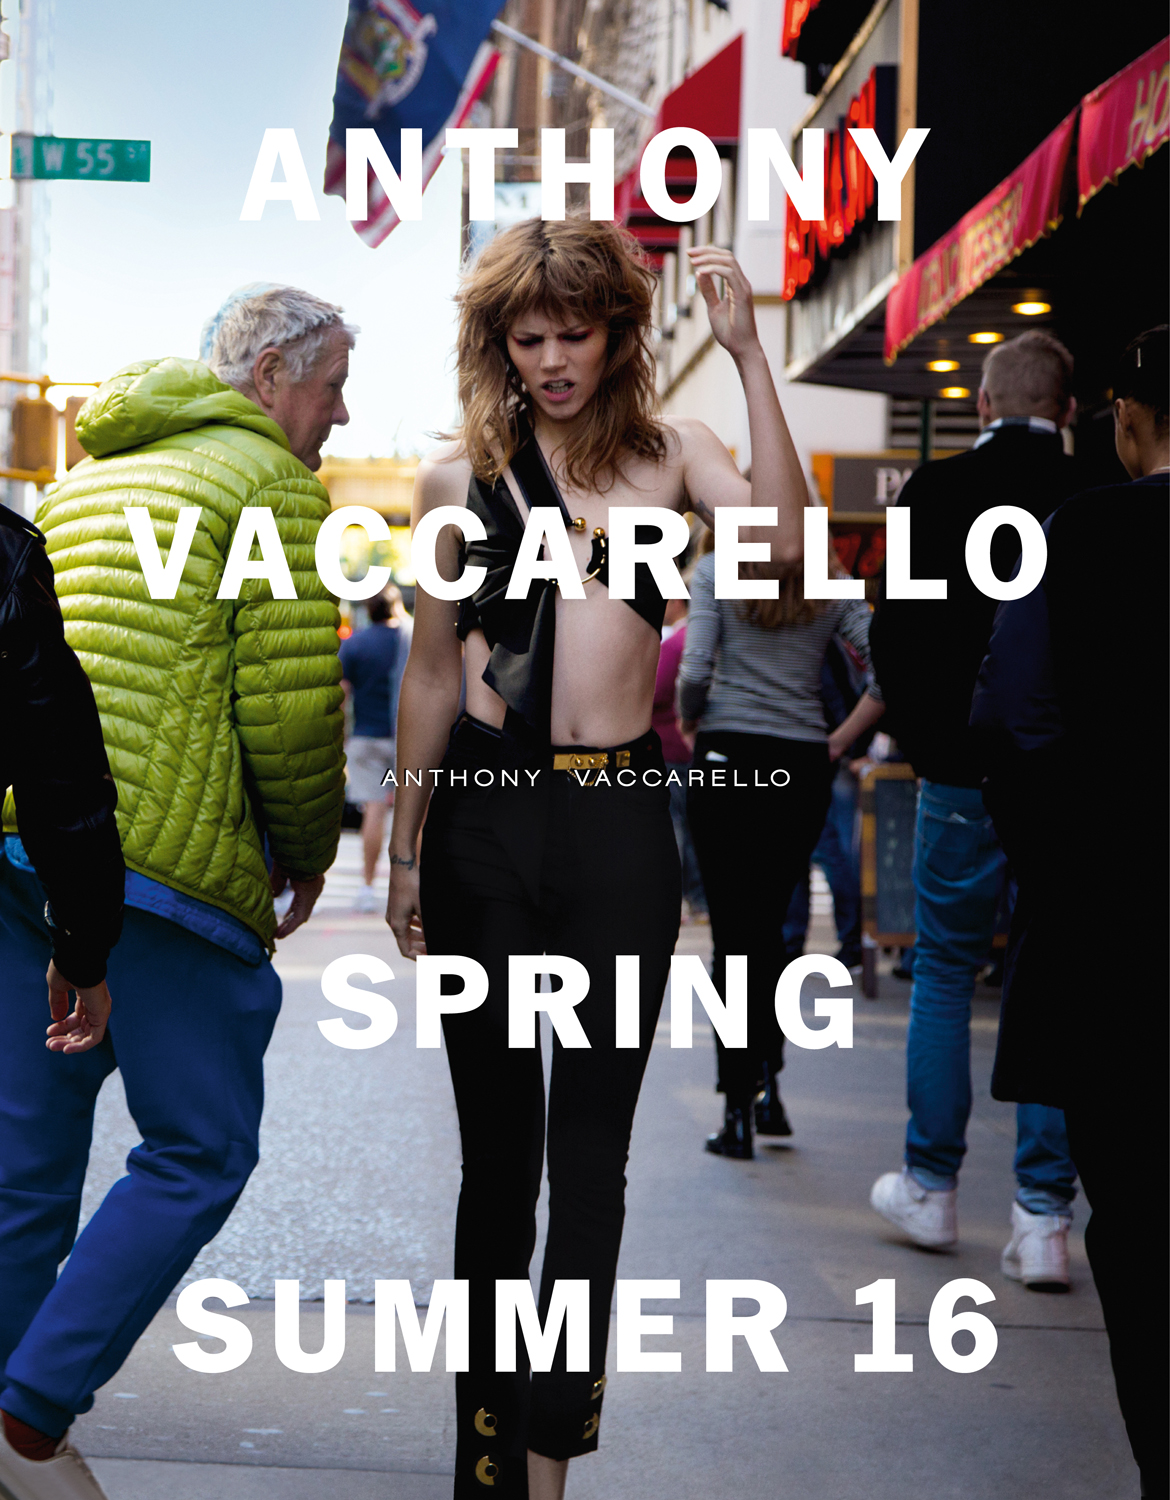 Anthony-Vaccarello-spring-ad-campaign-2016-theimpression-3